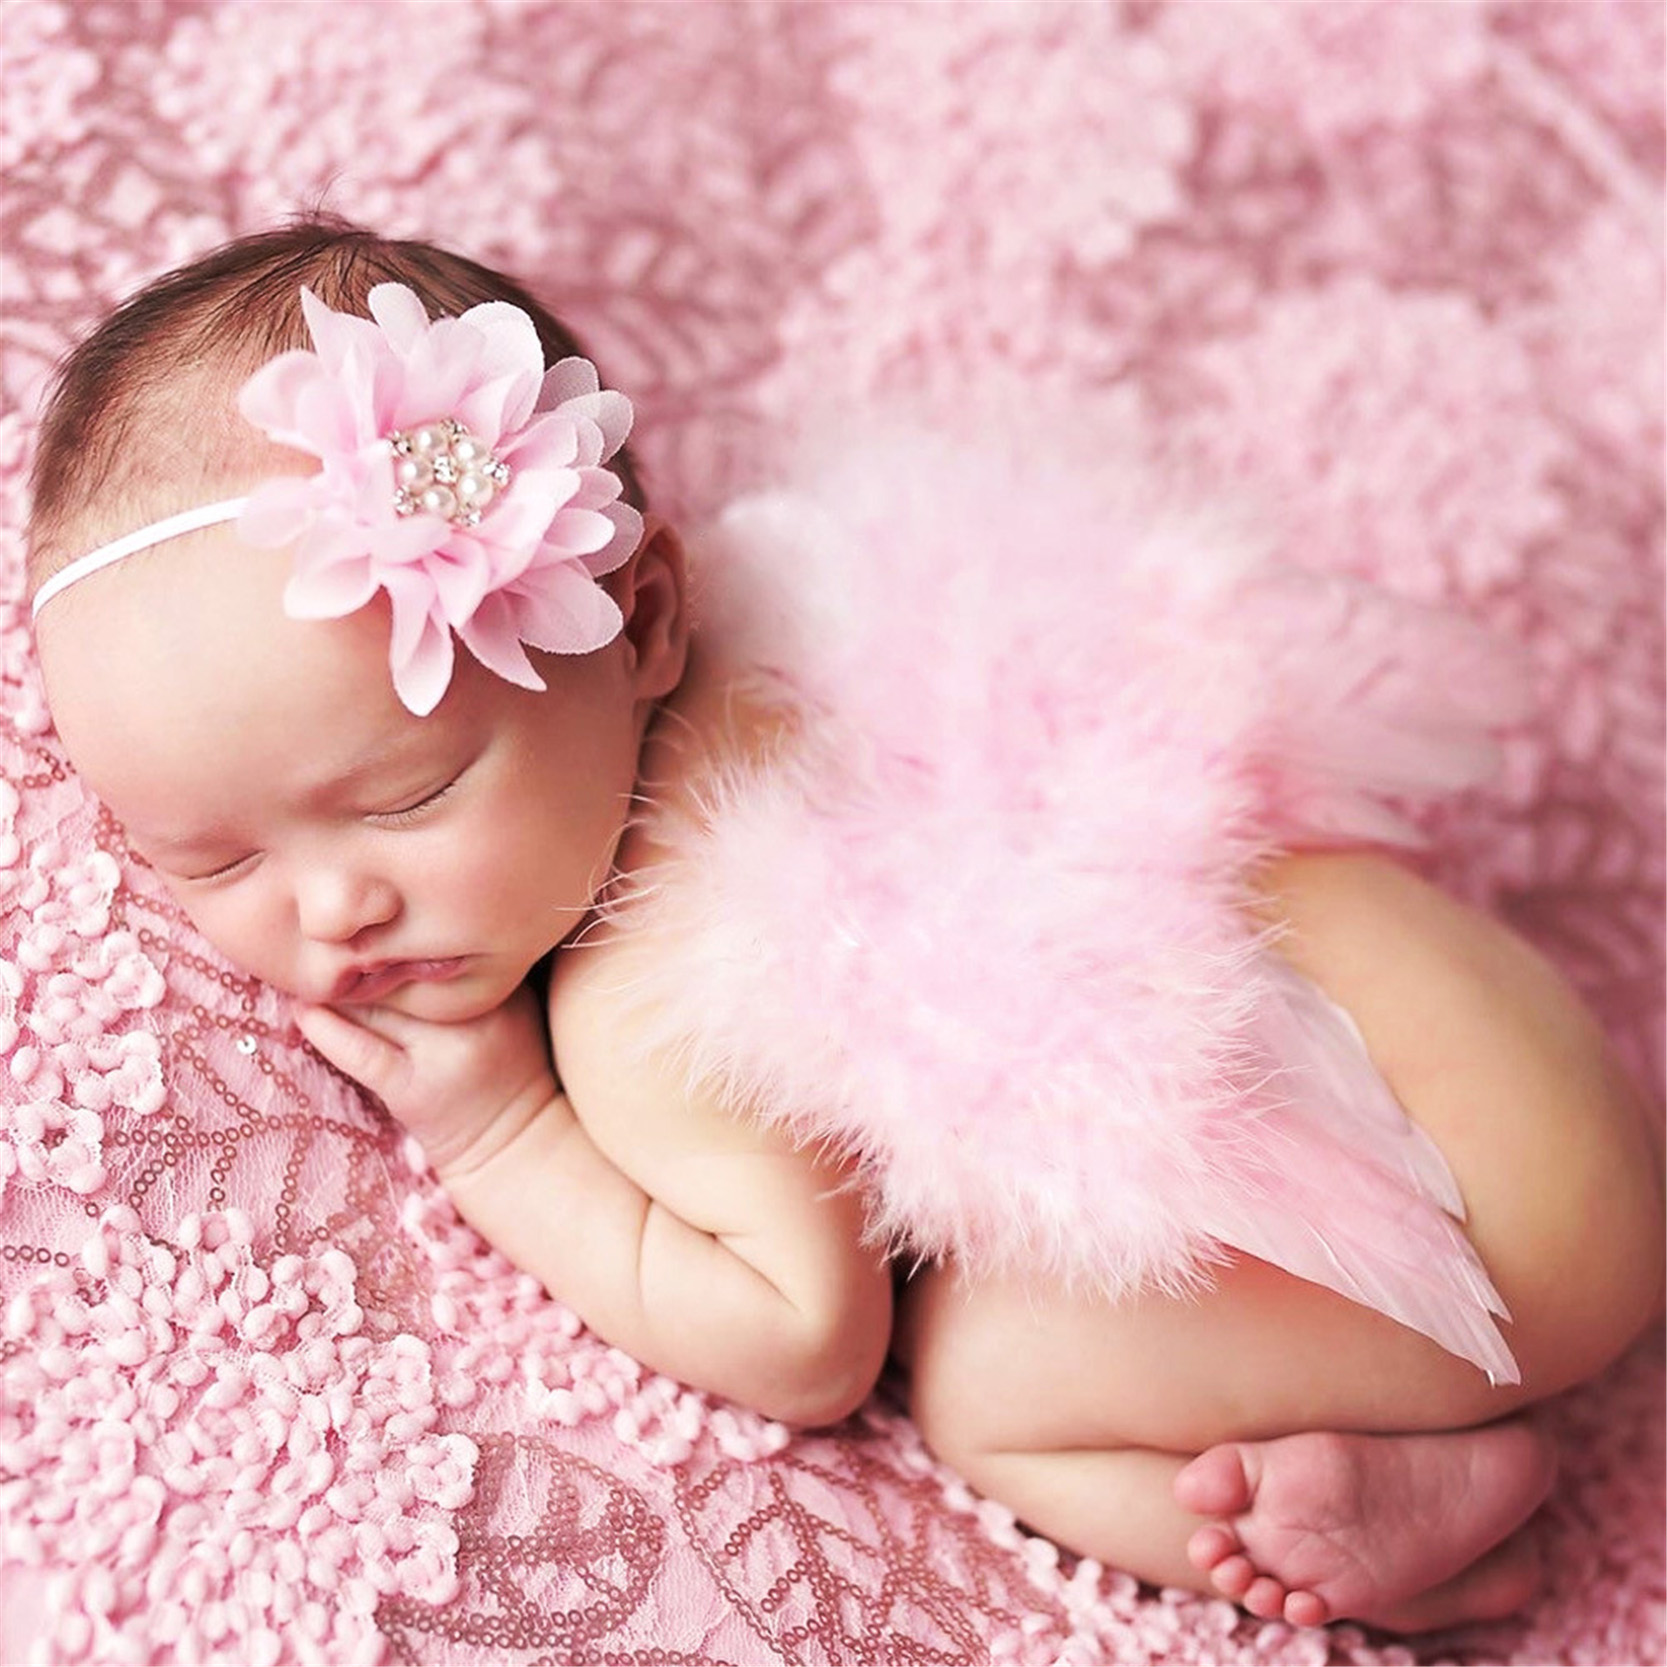 Angel Wings Feather Wings Baby Girl Flower Pearl Headband Photo Shoot Hair Accessories For Newborn Photography Props 0-6 Months baby girl flower angel feather wings hair headband photo shoot kawaii hair accessories for newborns head band photography props